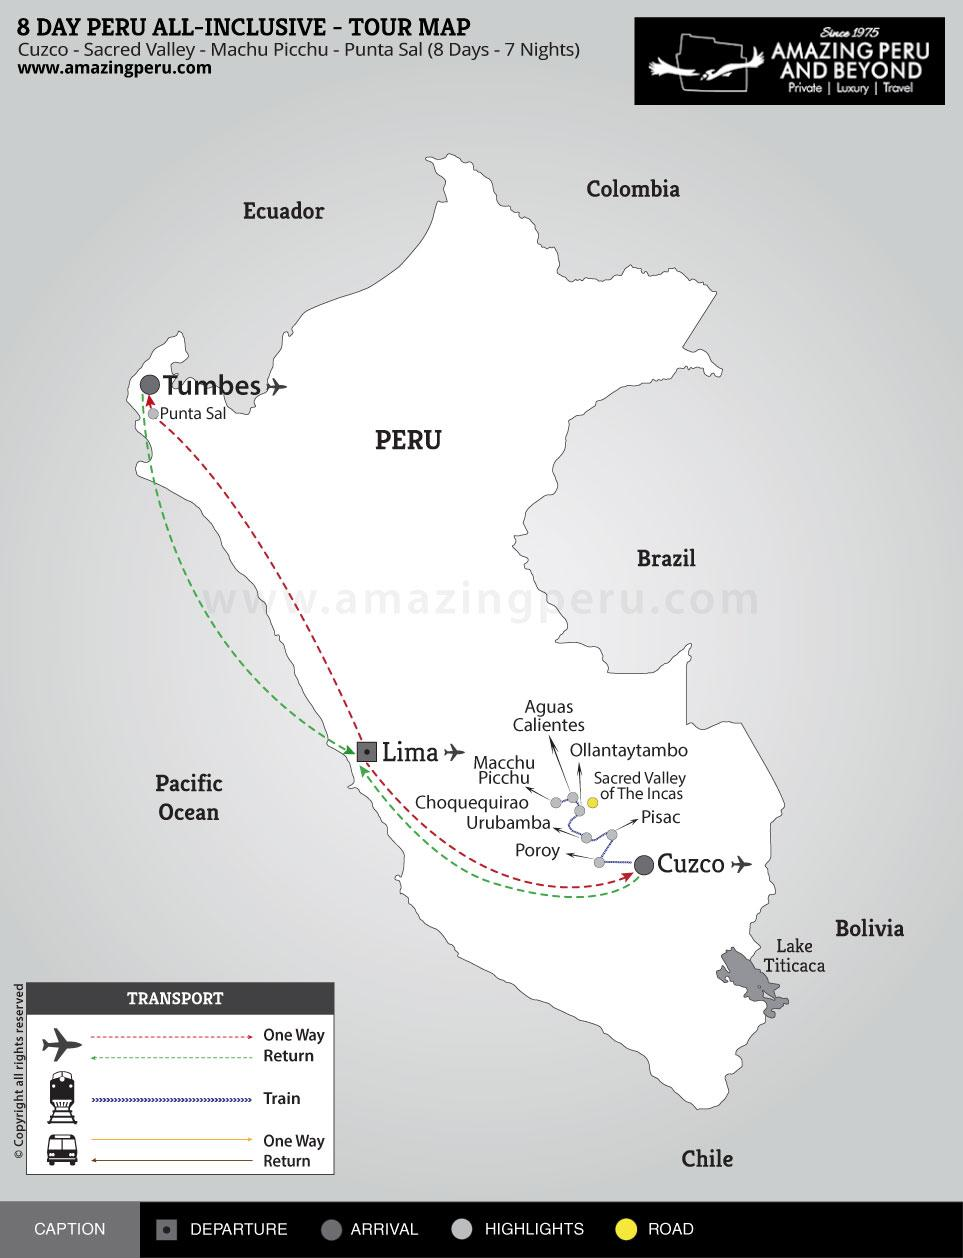 8 day Peru All-Inclusive Tour - 8 days / 7 nights.